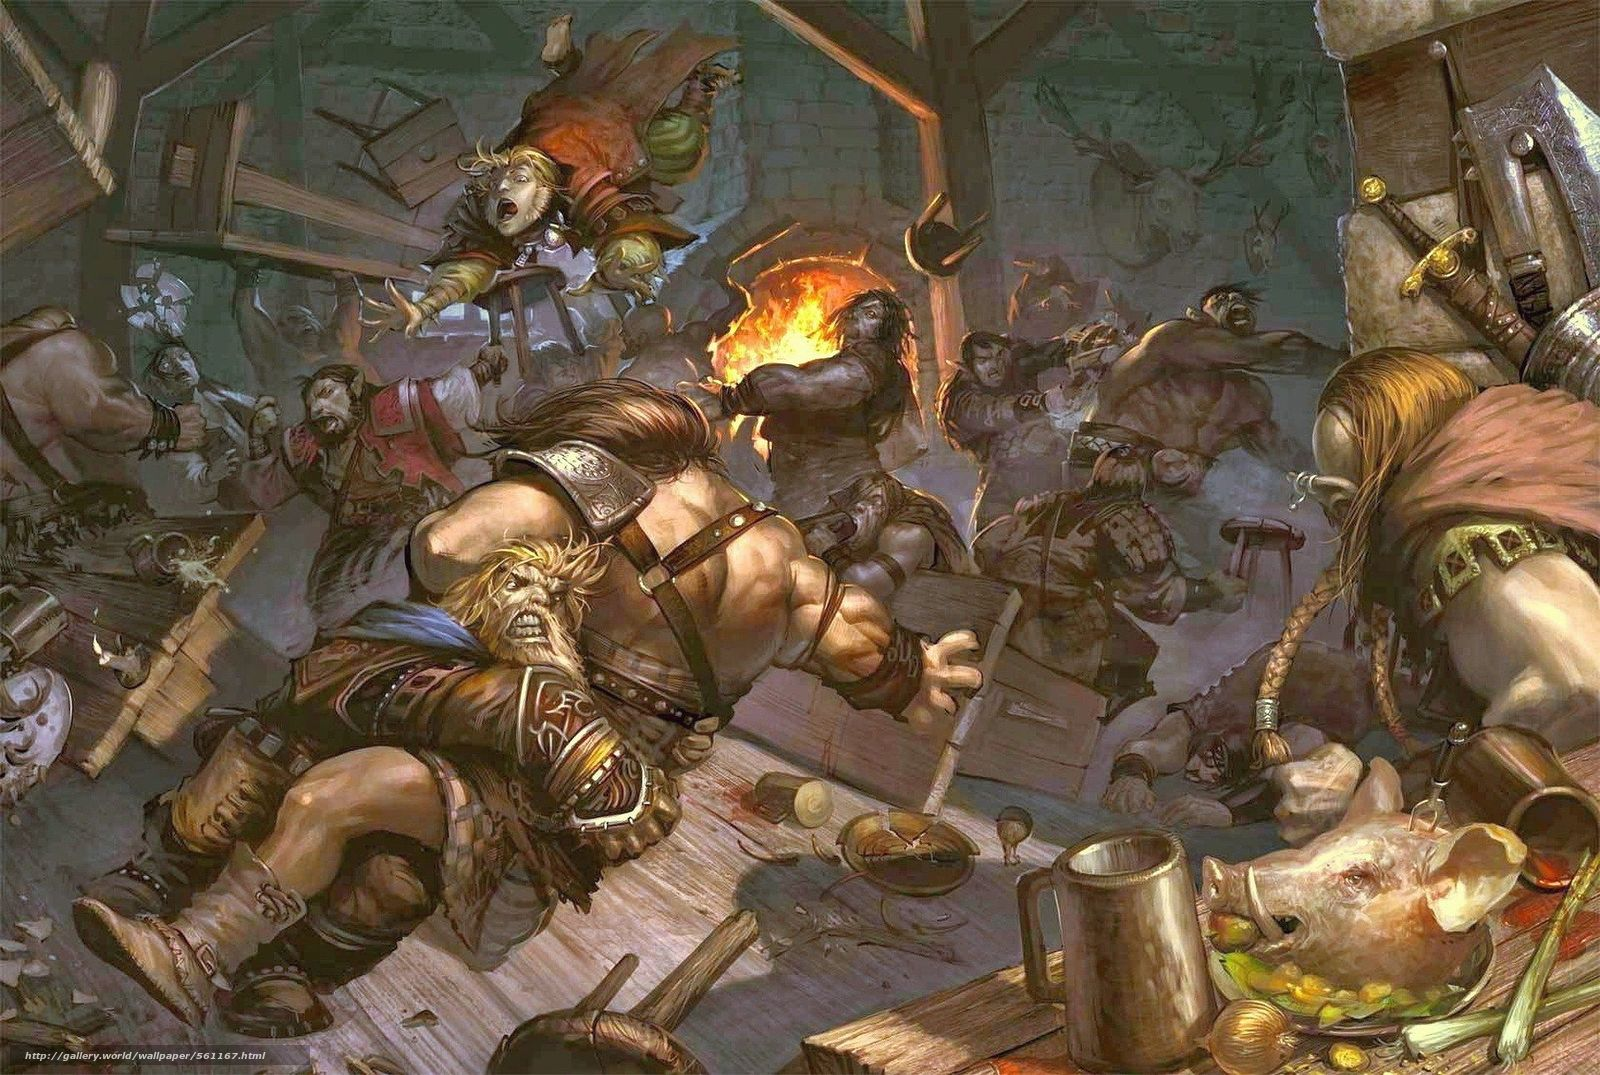 Download Wallpaper Tavern, Fighting, Food, Vikings - Dungeons And Dragons Bar Fight - HD Wallpaper